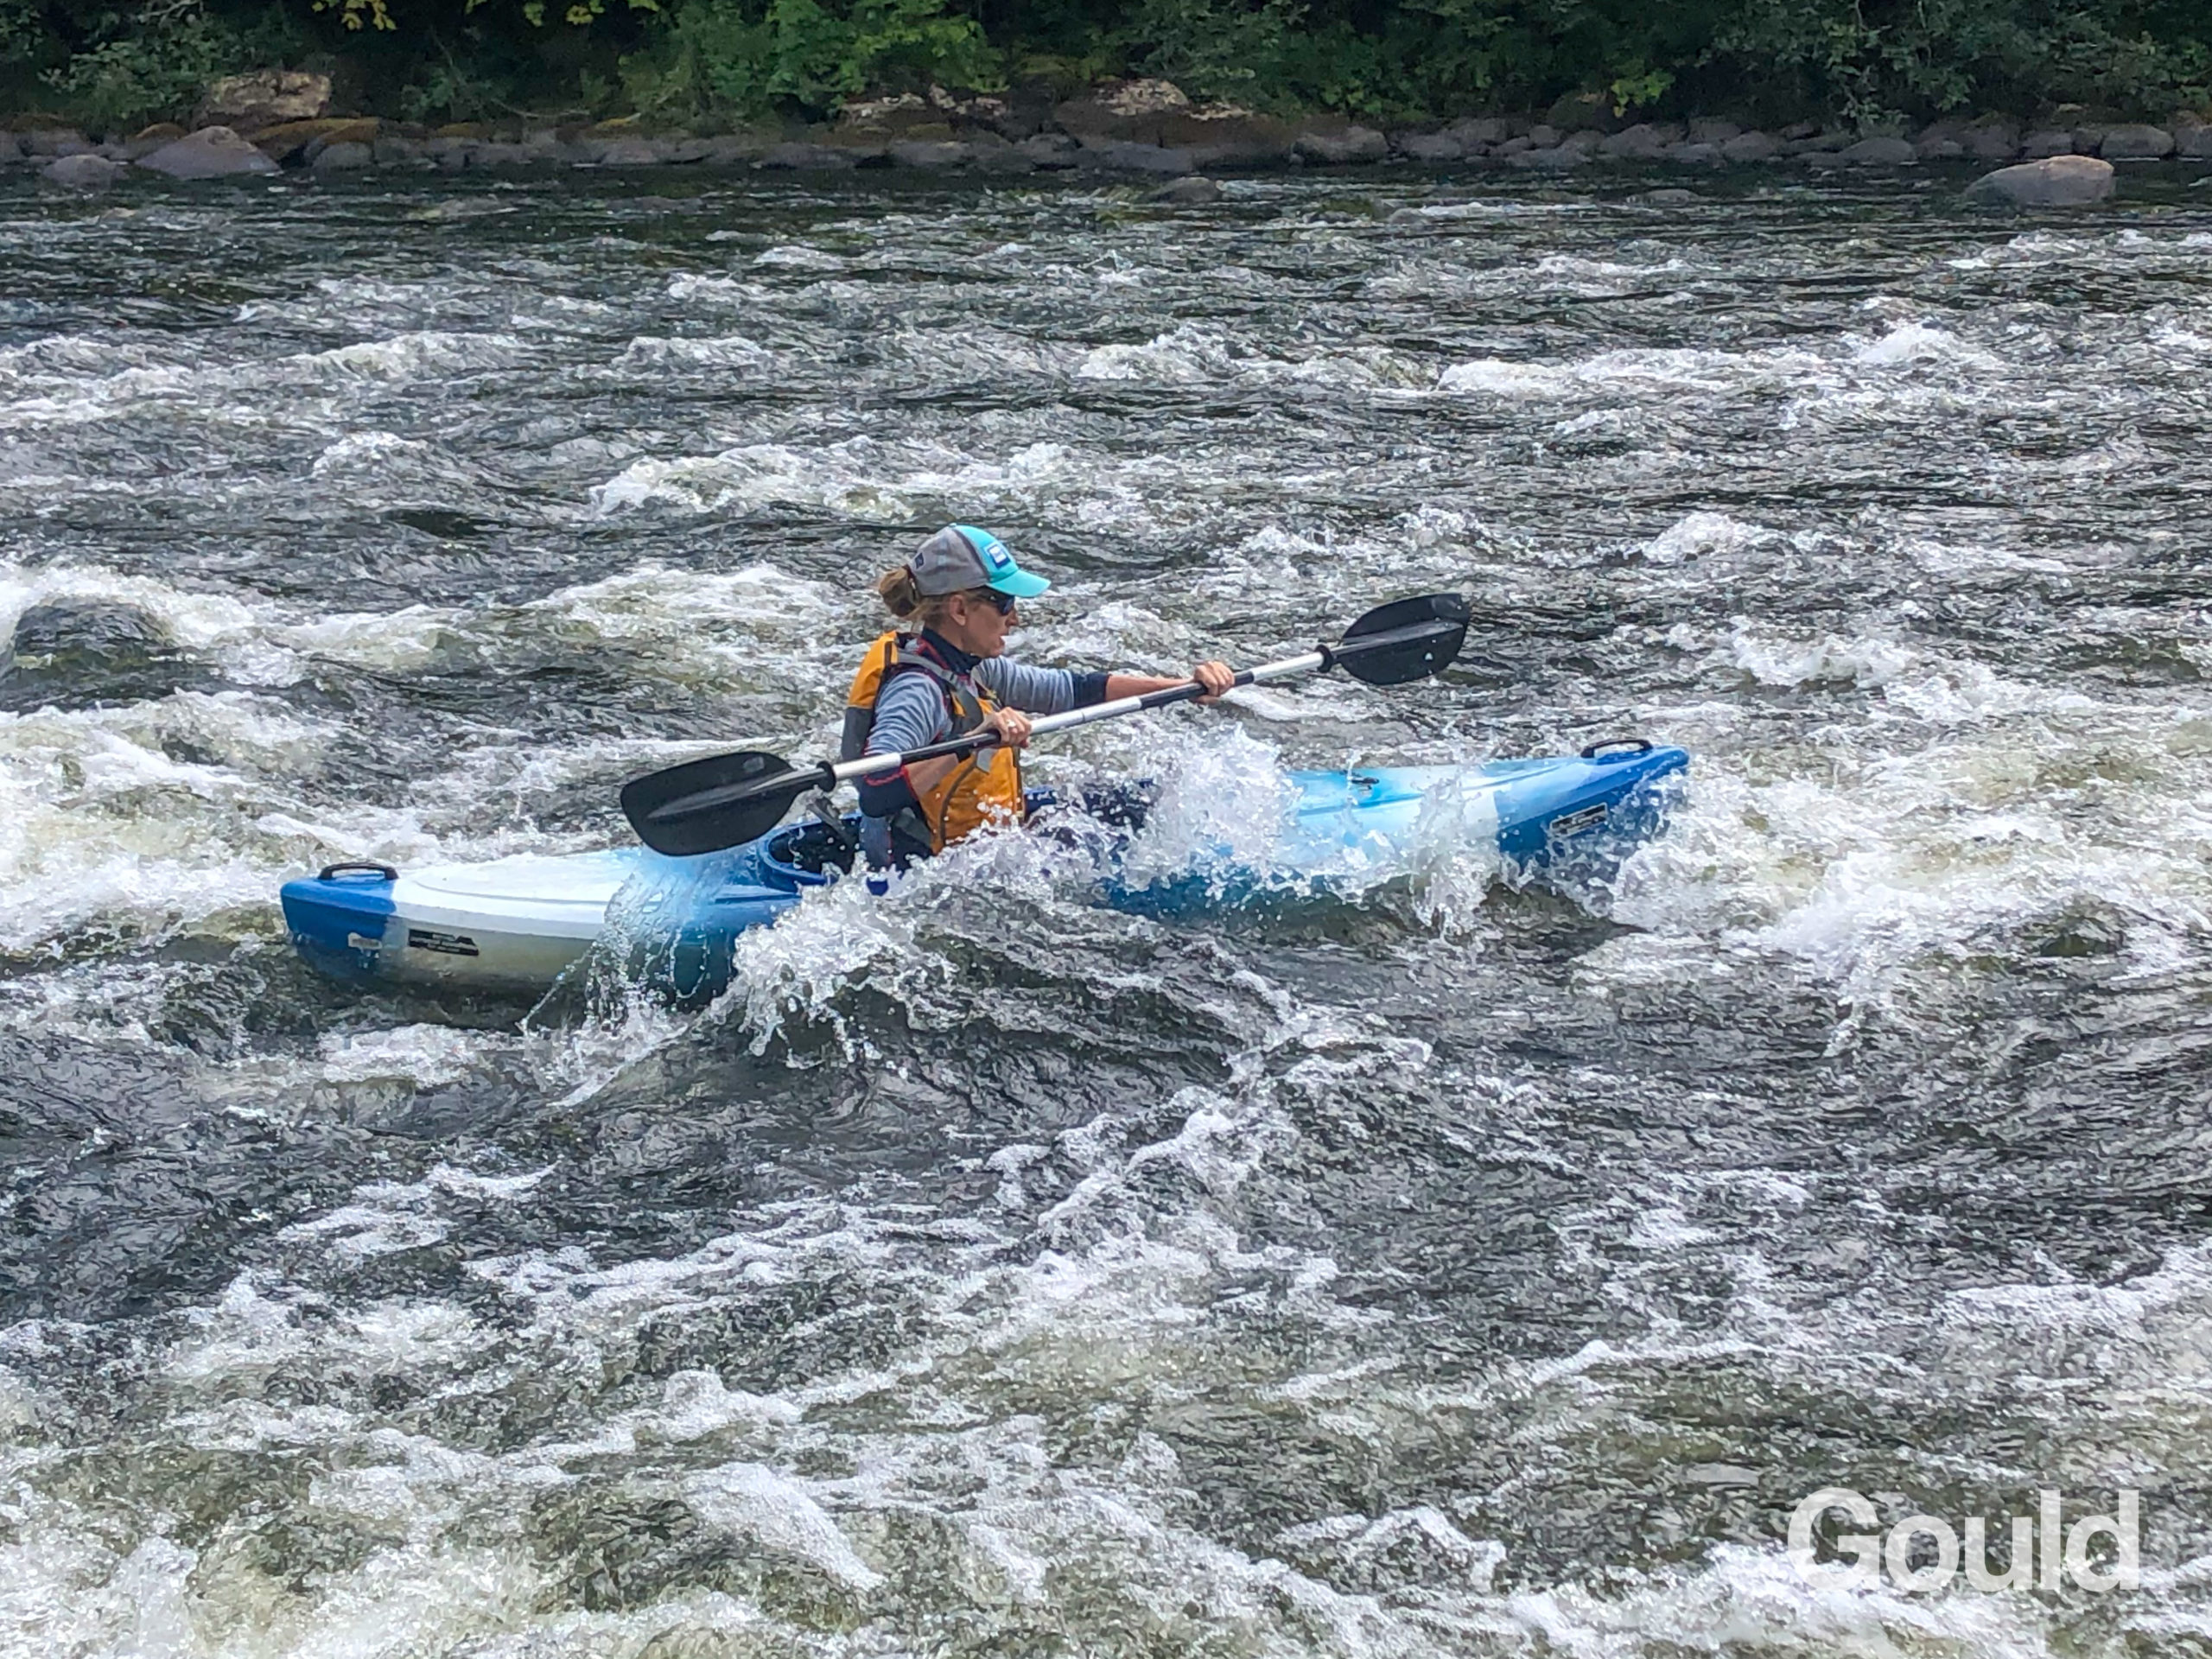 Gould News: 3 days in the wilderness (camping& canoeing edition)